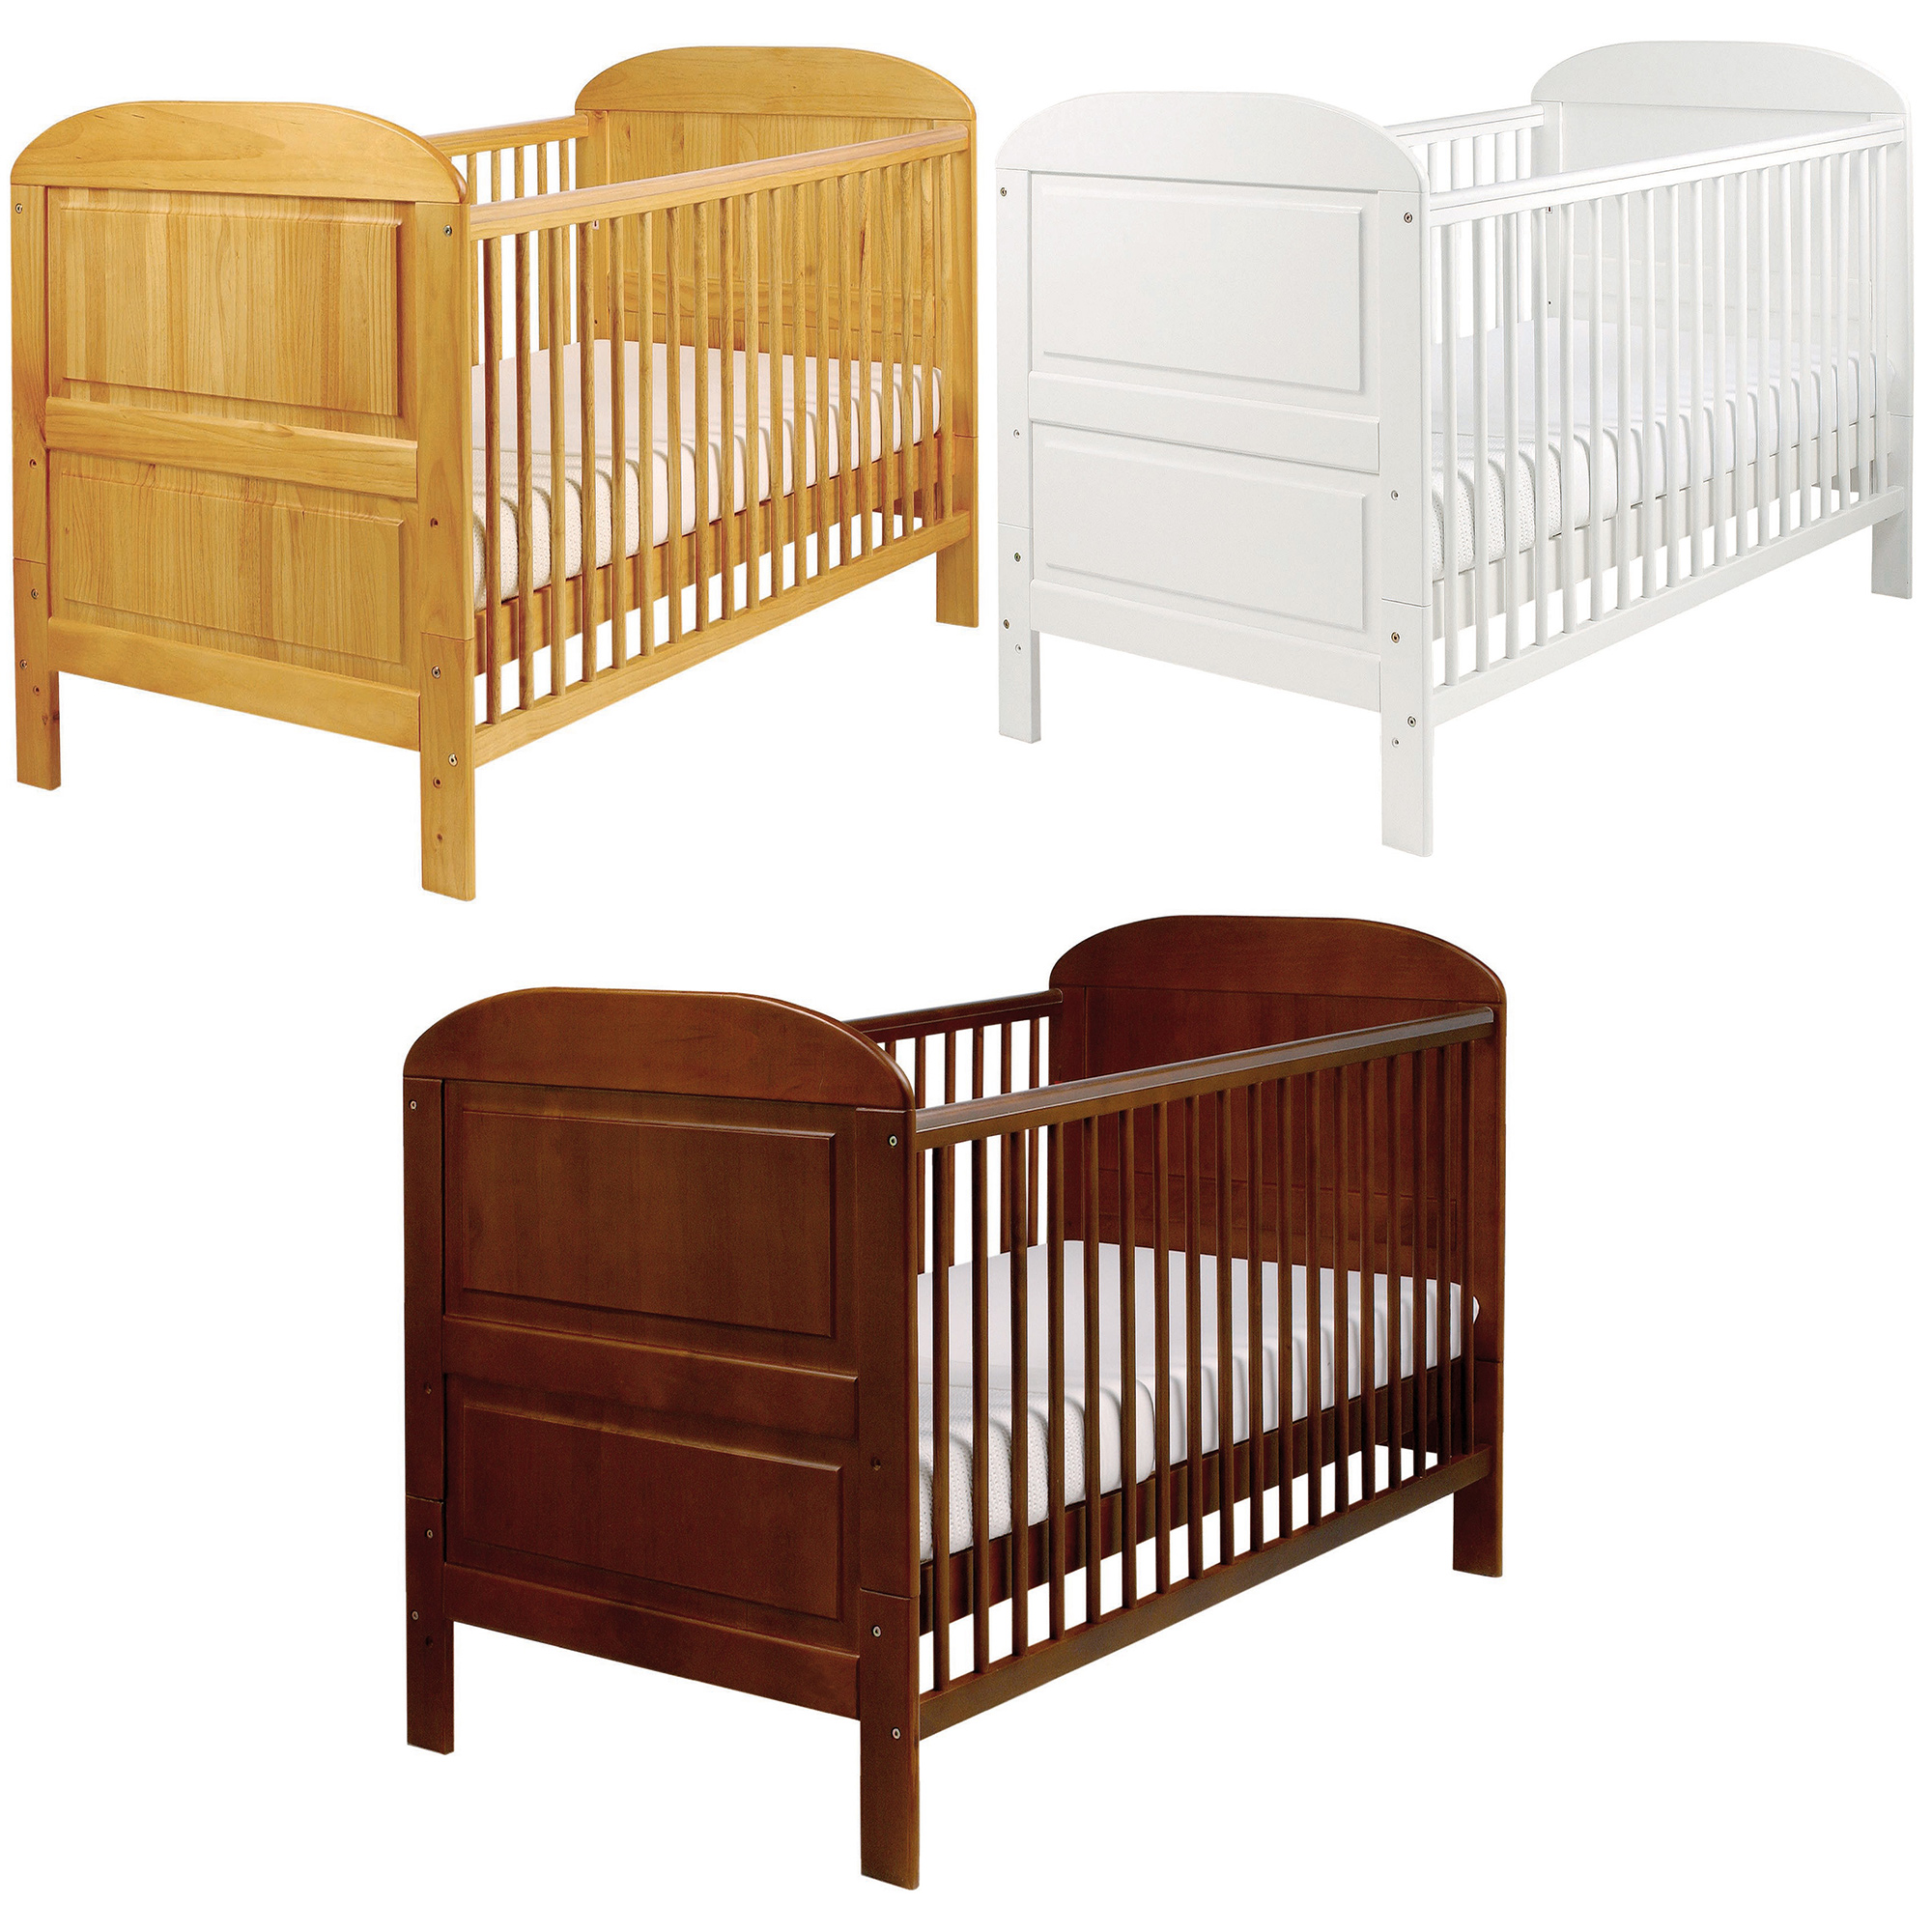 East Coast ANGELINA SOLID PINE COT BED Baby Child Toddler